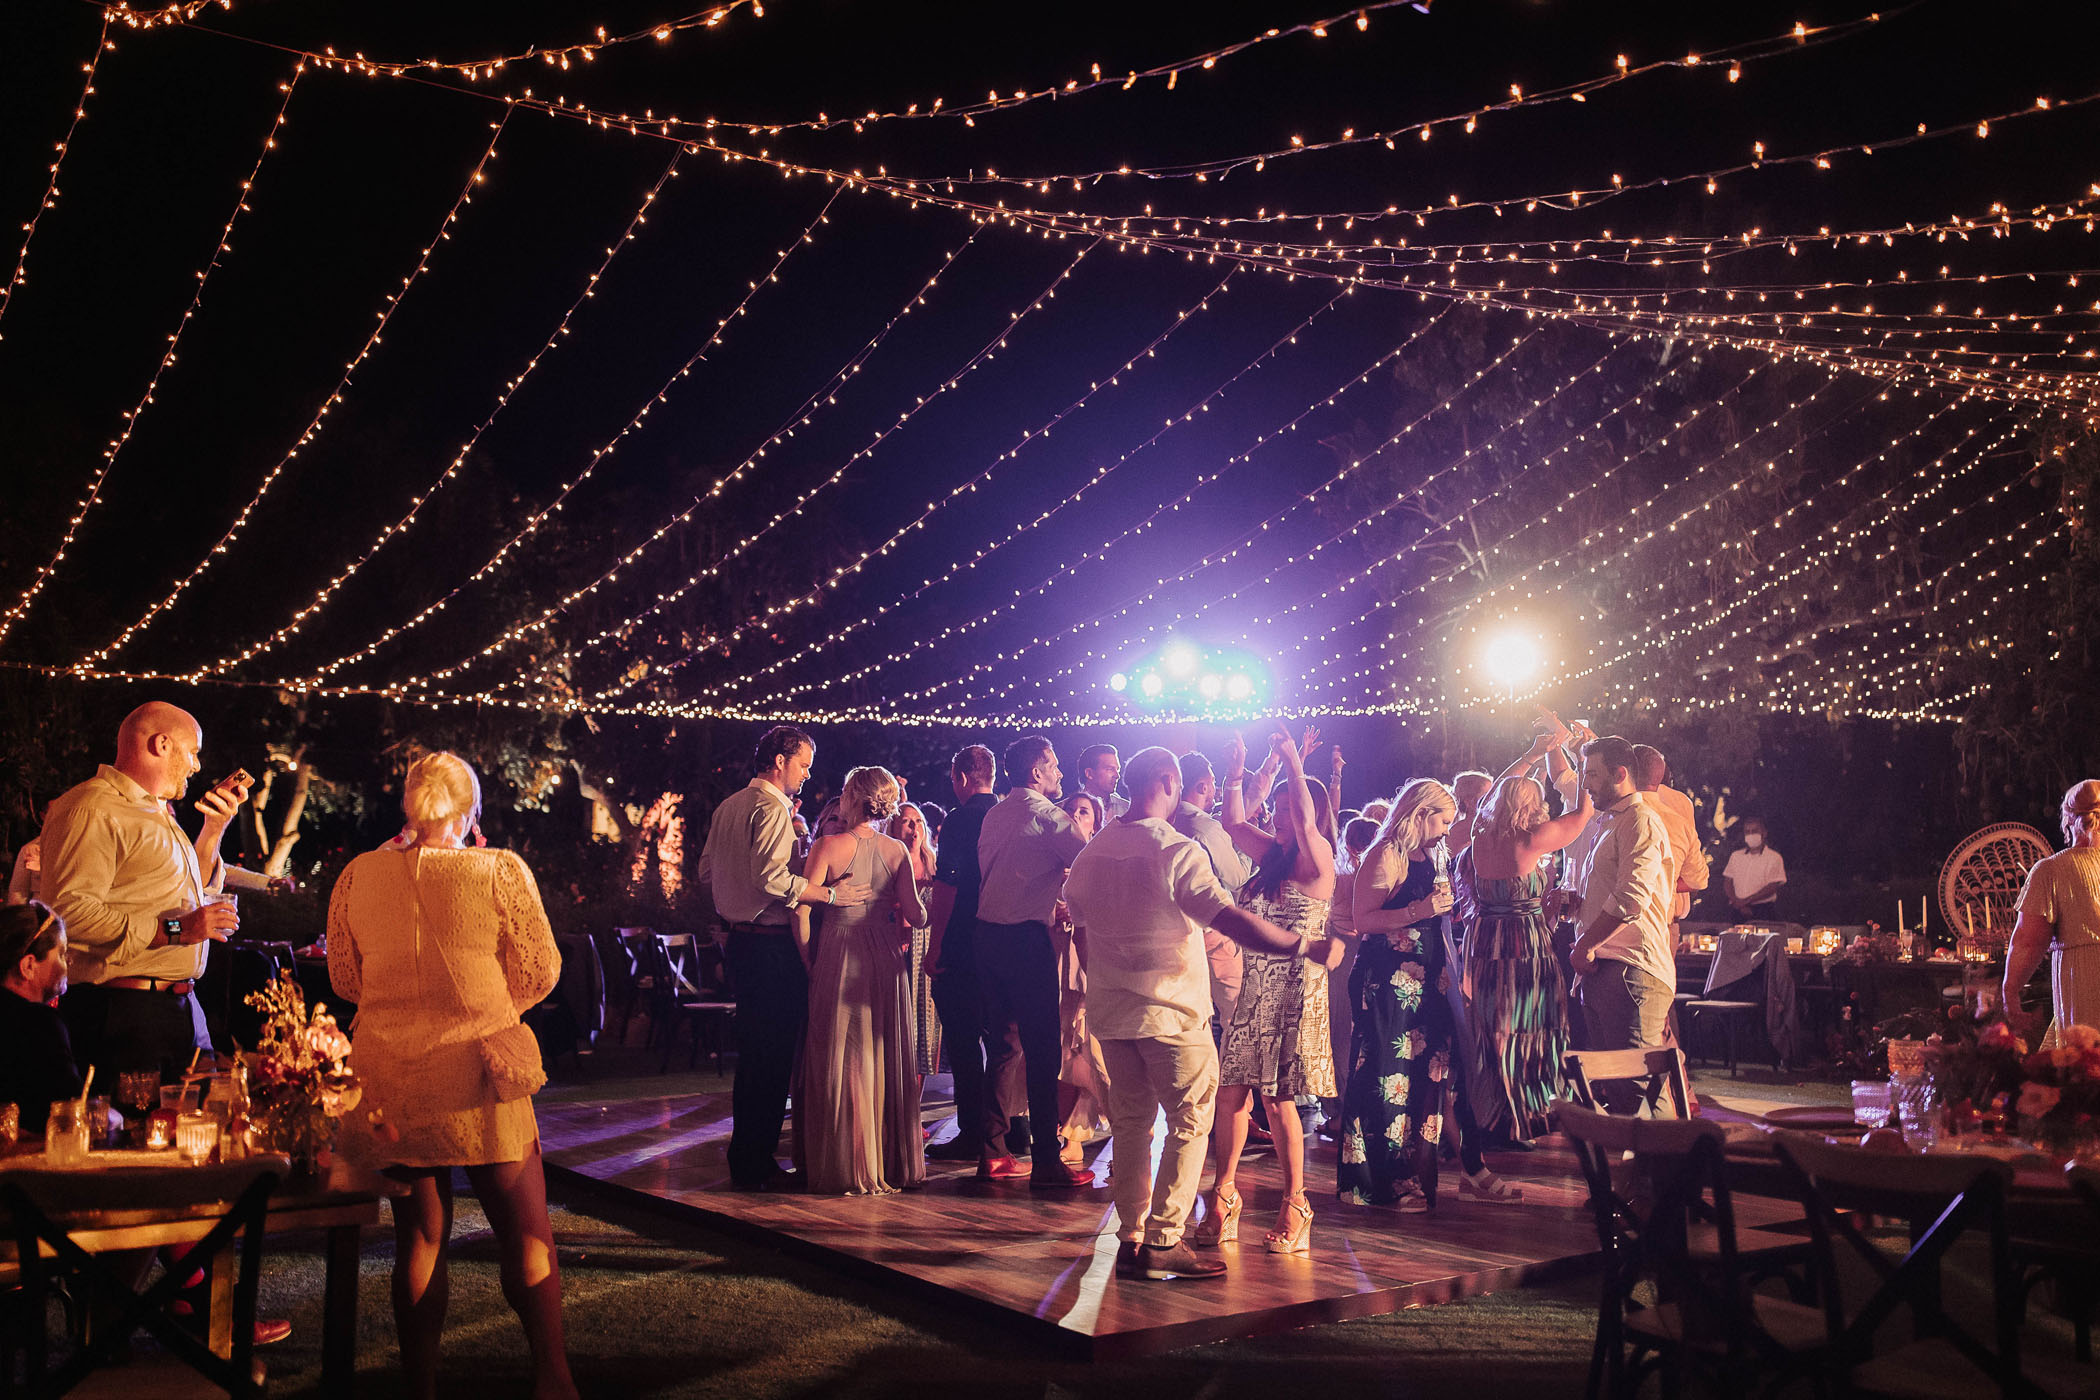 Guests partying at a wedding reception under twinkle lights at night